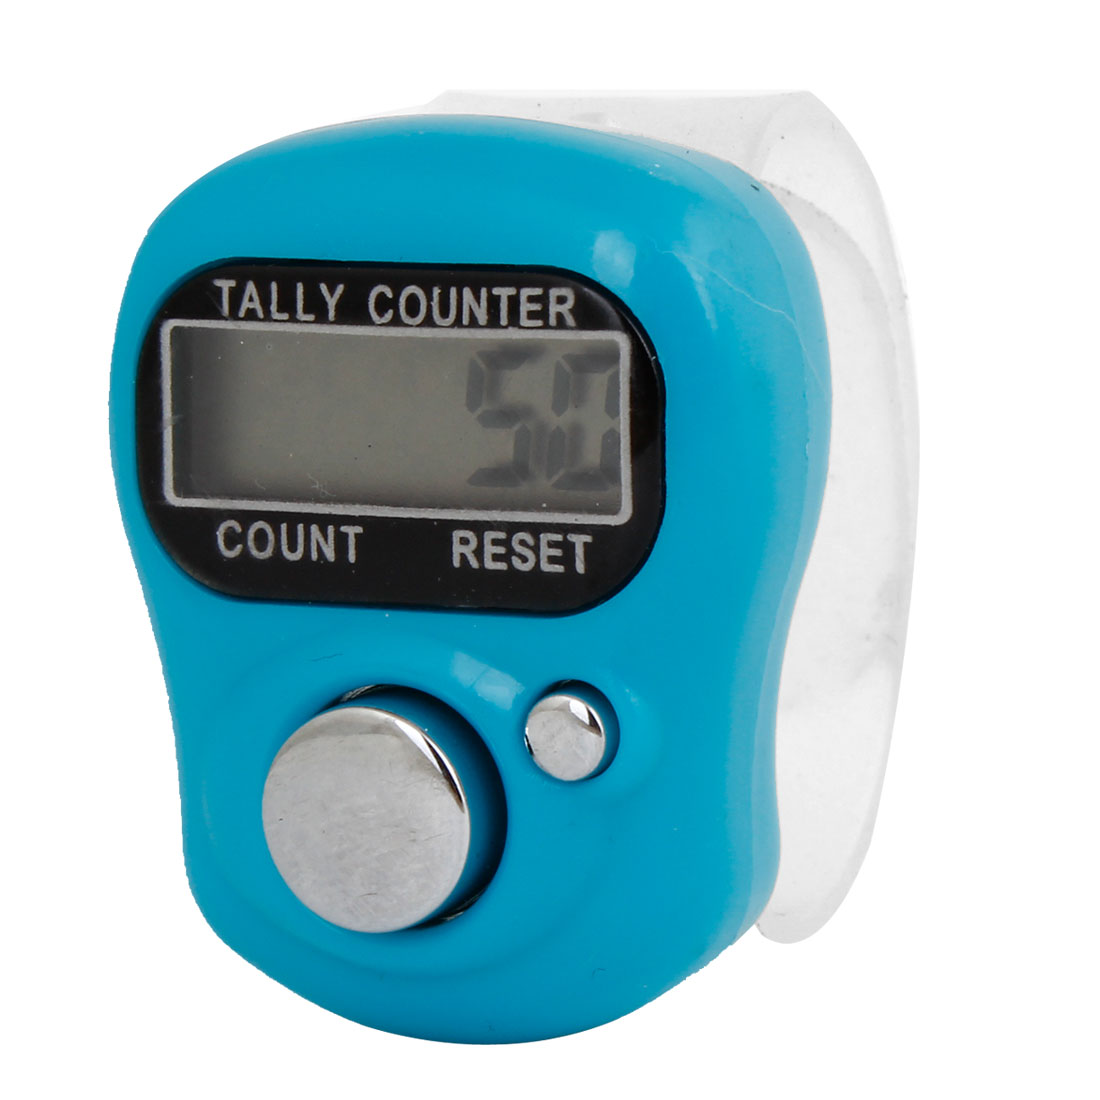 Tally Counter 5-Digit LCD Electronic Digital Finger Hand Held Counter Light Blue